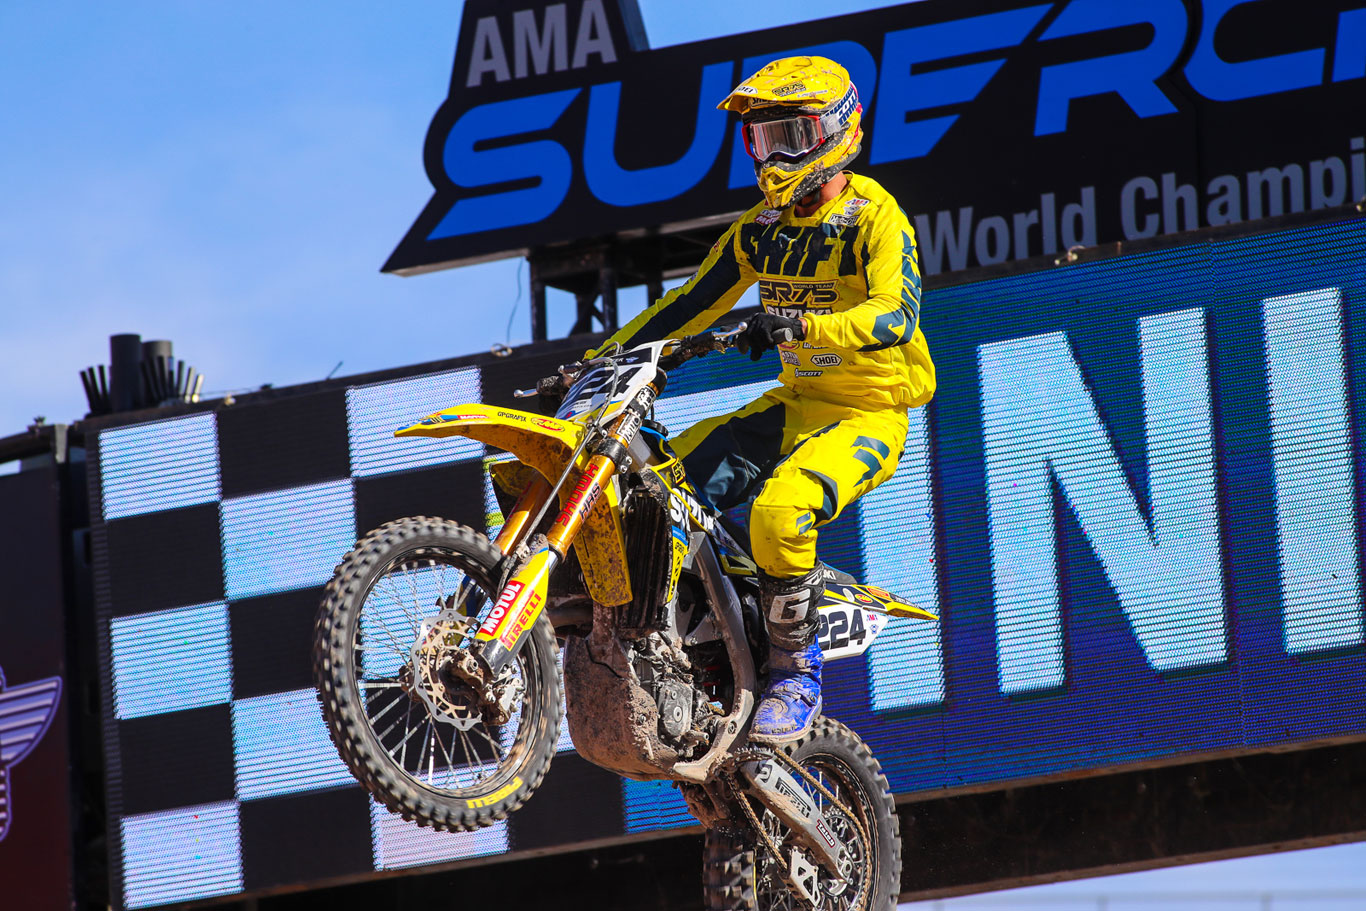 MAIN EVENT POINTS FOR SR75 & LEFRANÇOIS AT LAS VEGAS SUPERCROSS